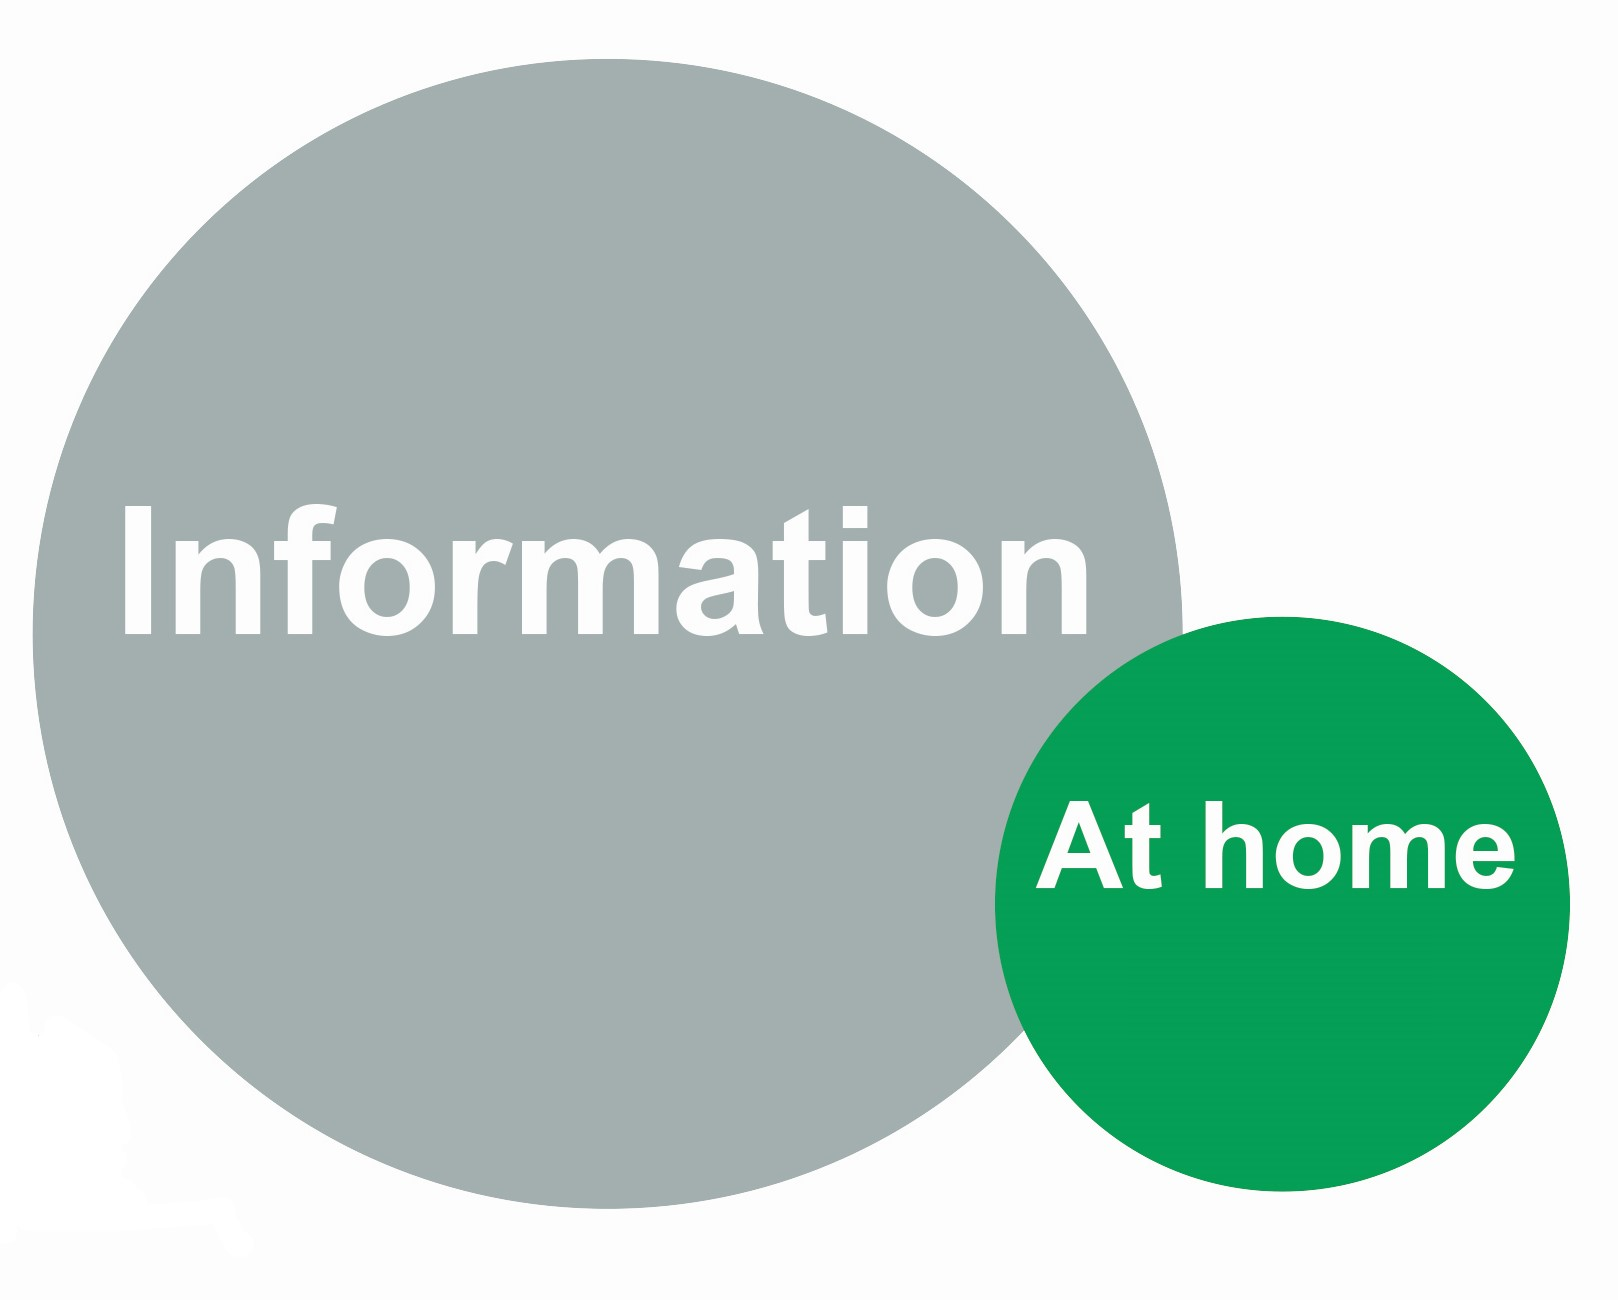 Information at home